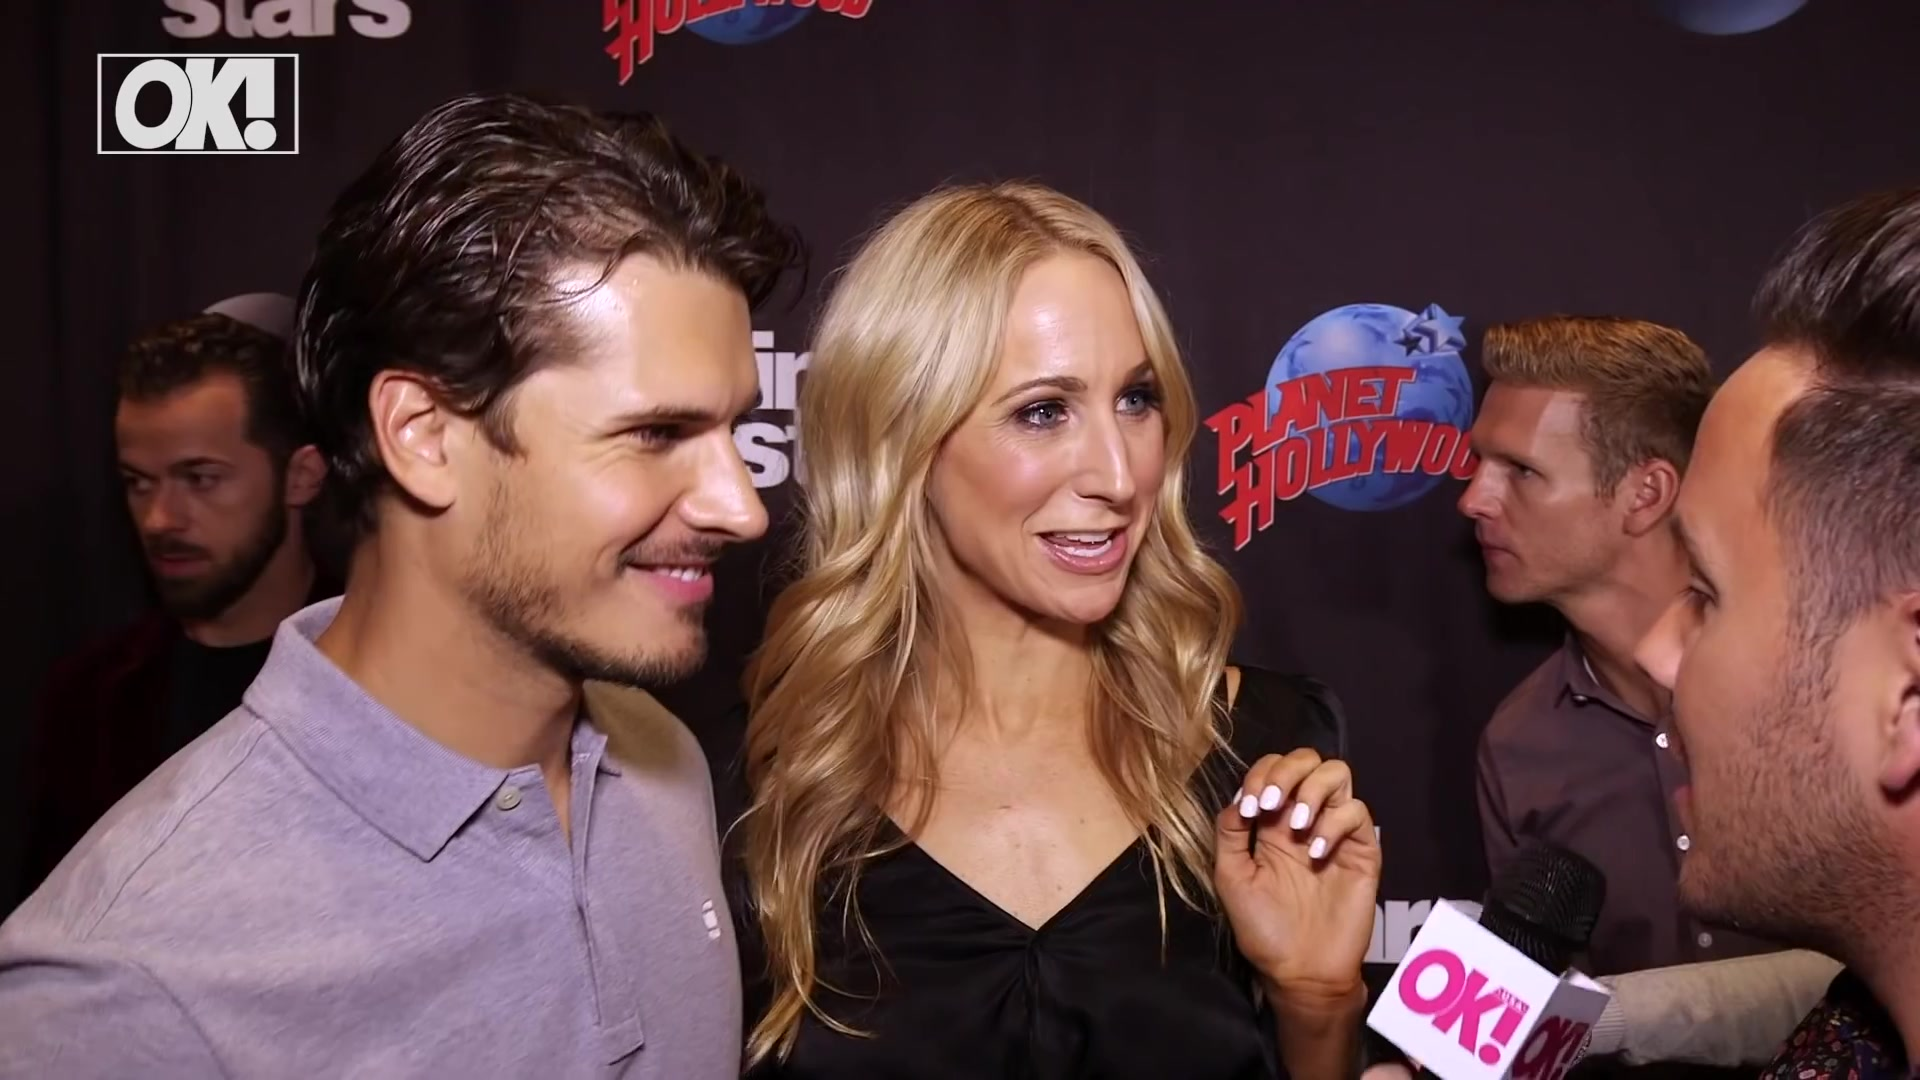 'DWTS' Cast Reveals Their Dancing Inspiration - And Who's Already On Track To Win! 02